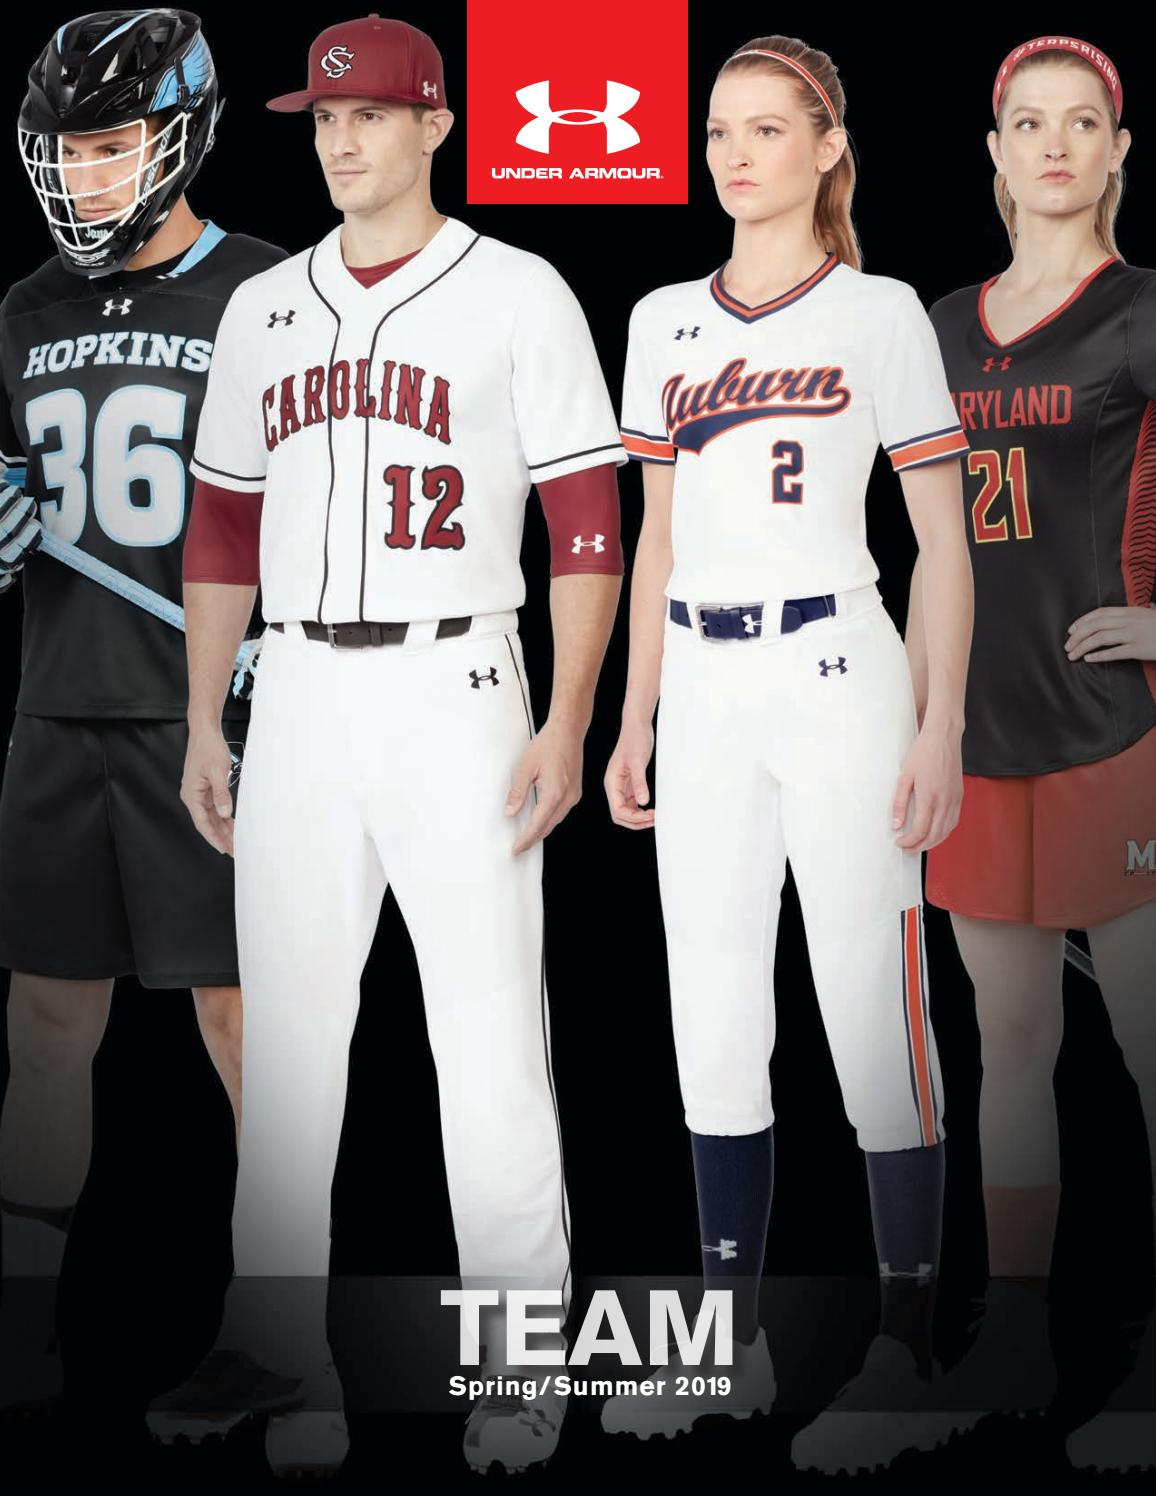 51407b0ff Under Armour Spring Summer 2019 by Team Connection - issuu